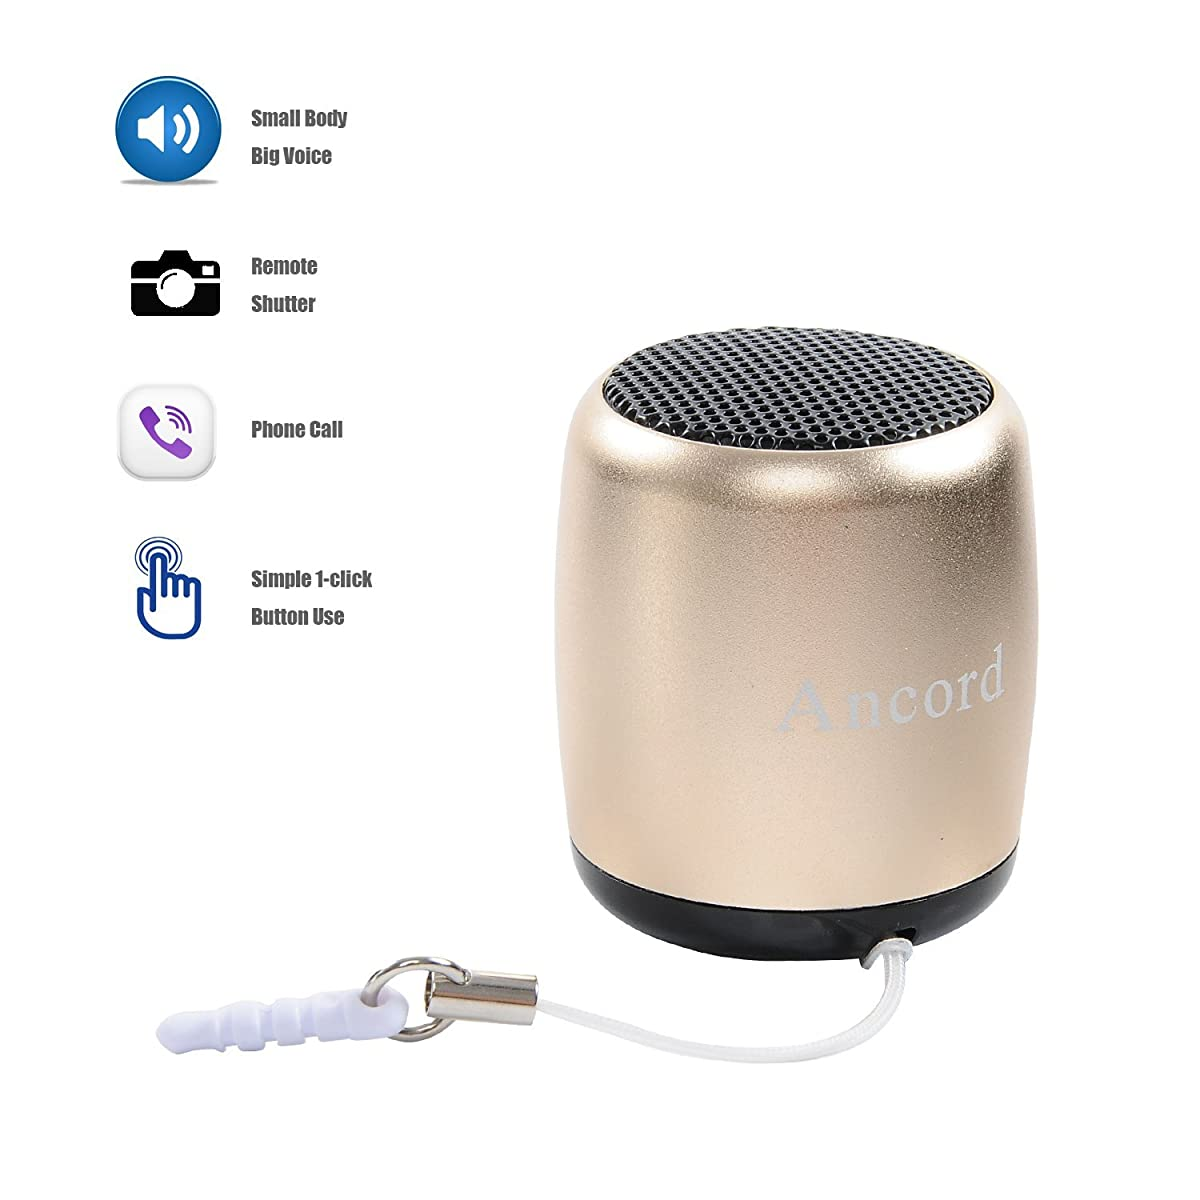 Small Bluetooth Speaker Portable by Ancord Small Body Loud Voice Shutter Button Selfie Features Gold